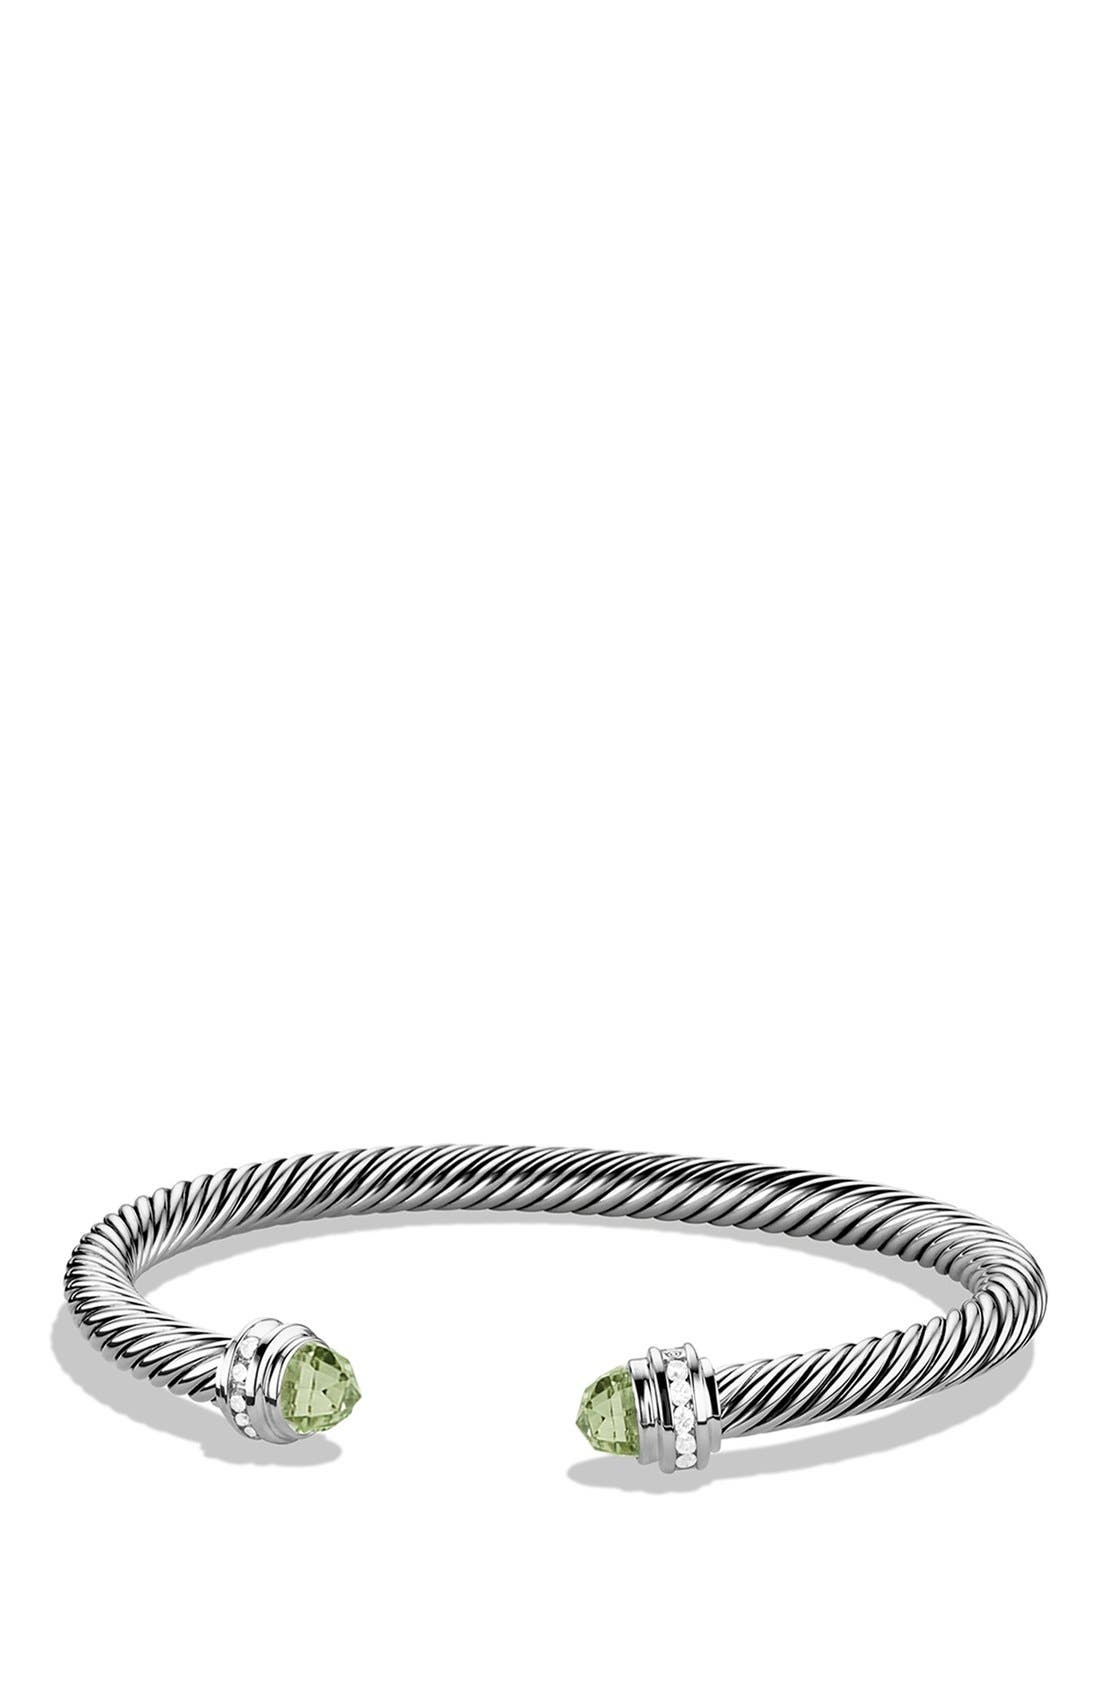 Main Image - David Yurman 'Cable Classics' Bracelet with Semiprecious Stones & Diamonds